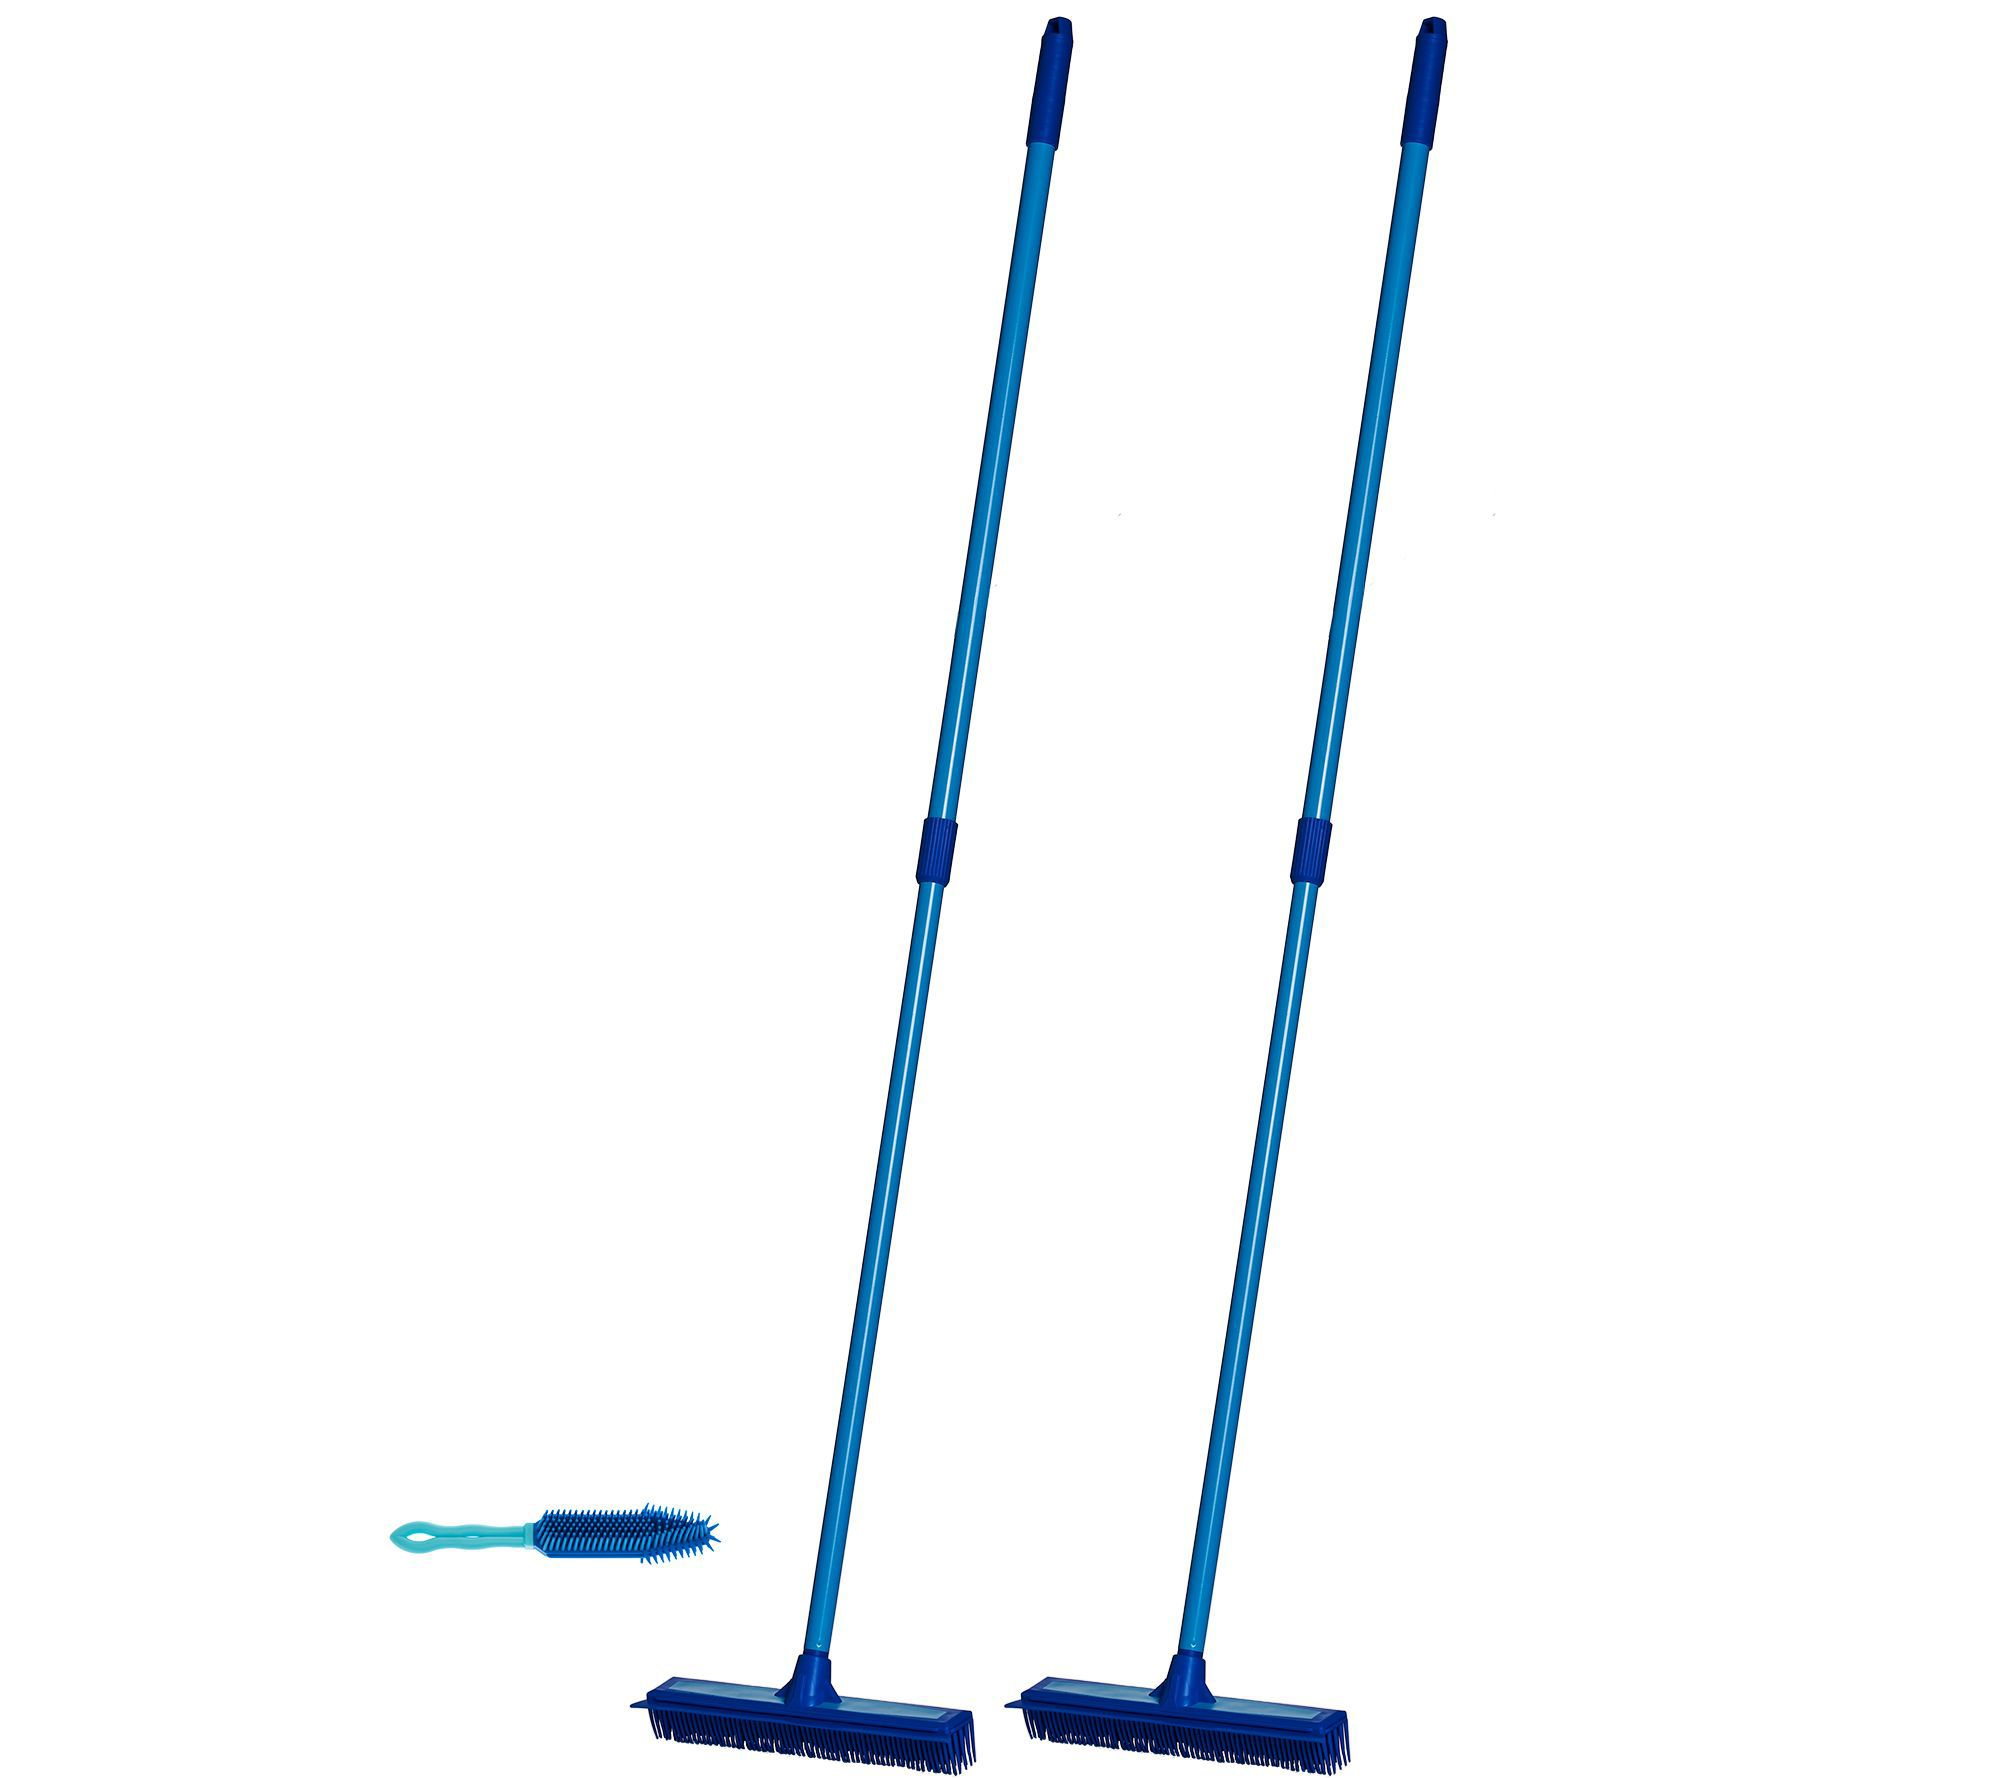 Don Aslett S Set Of 3 Multi Purpose Rubber Brooms With